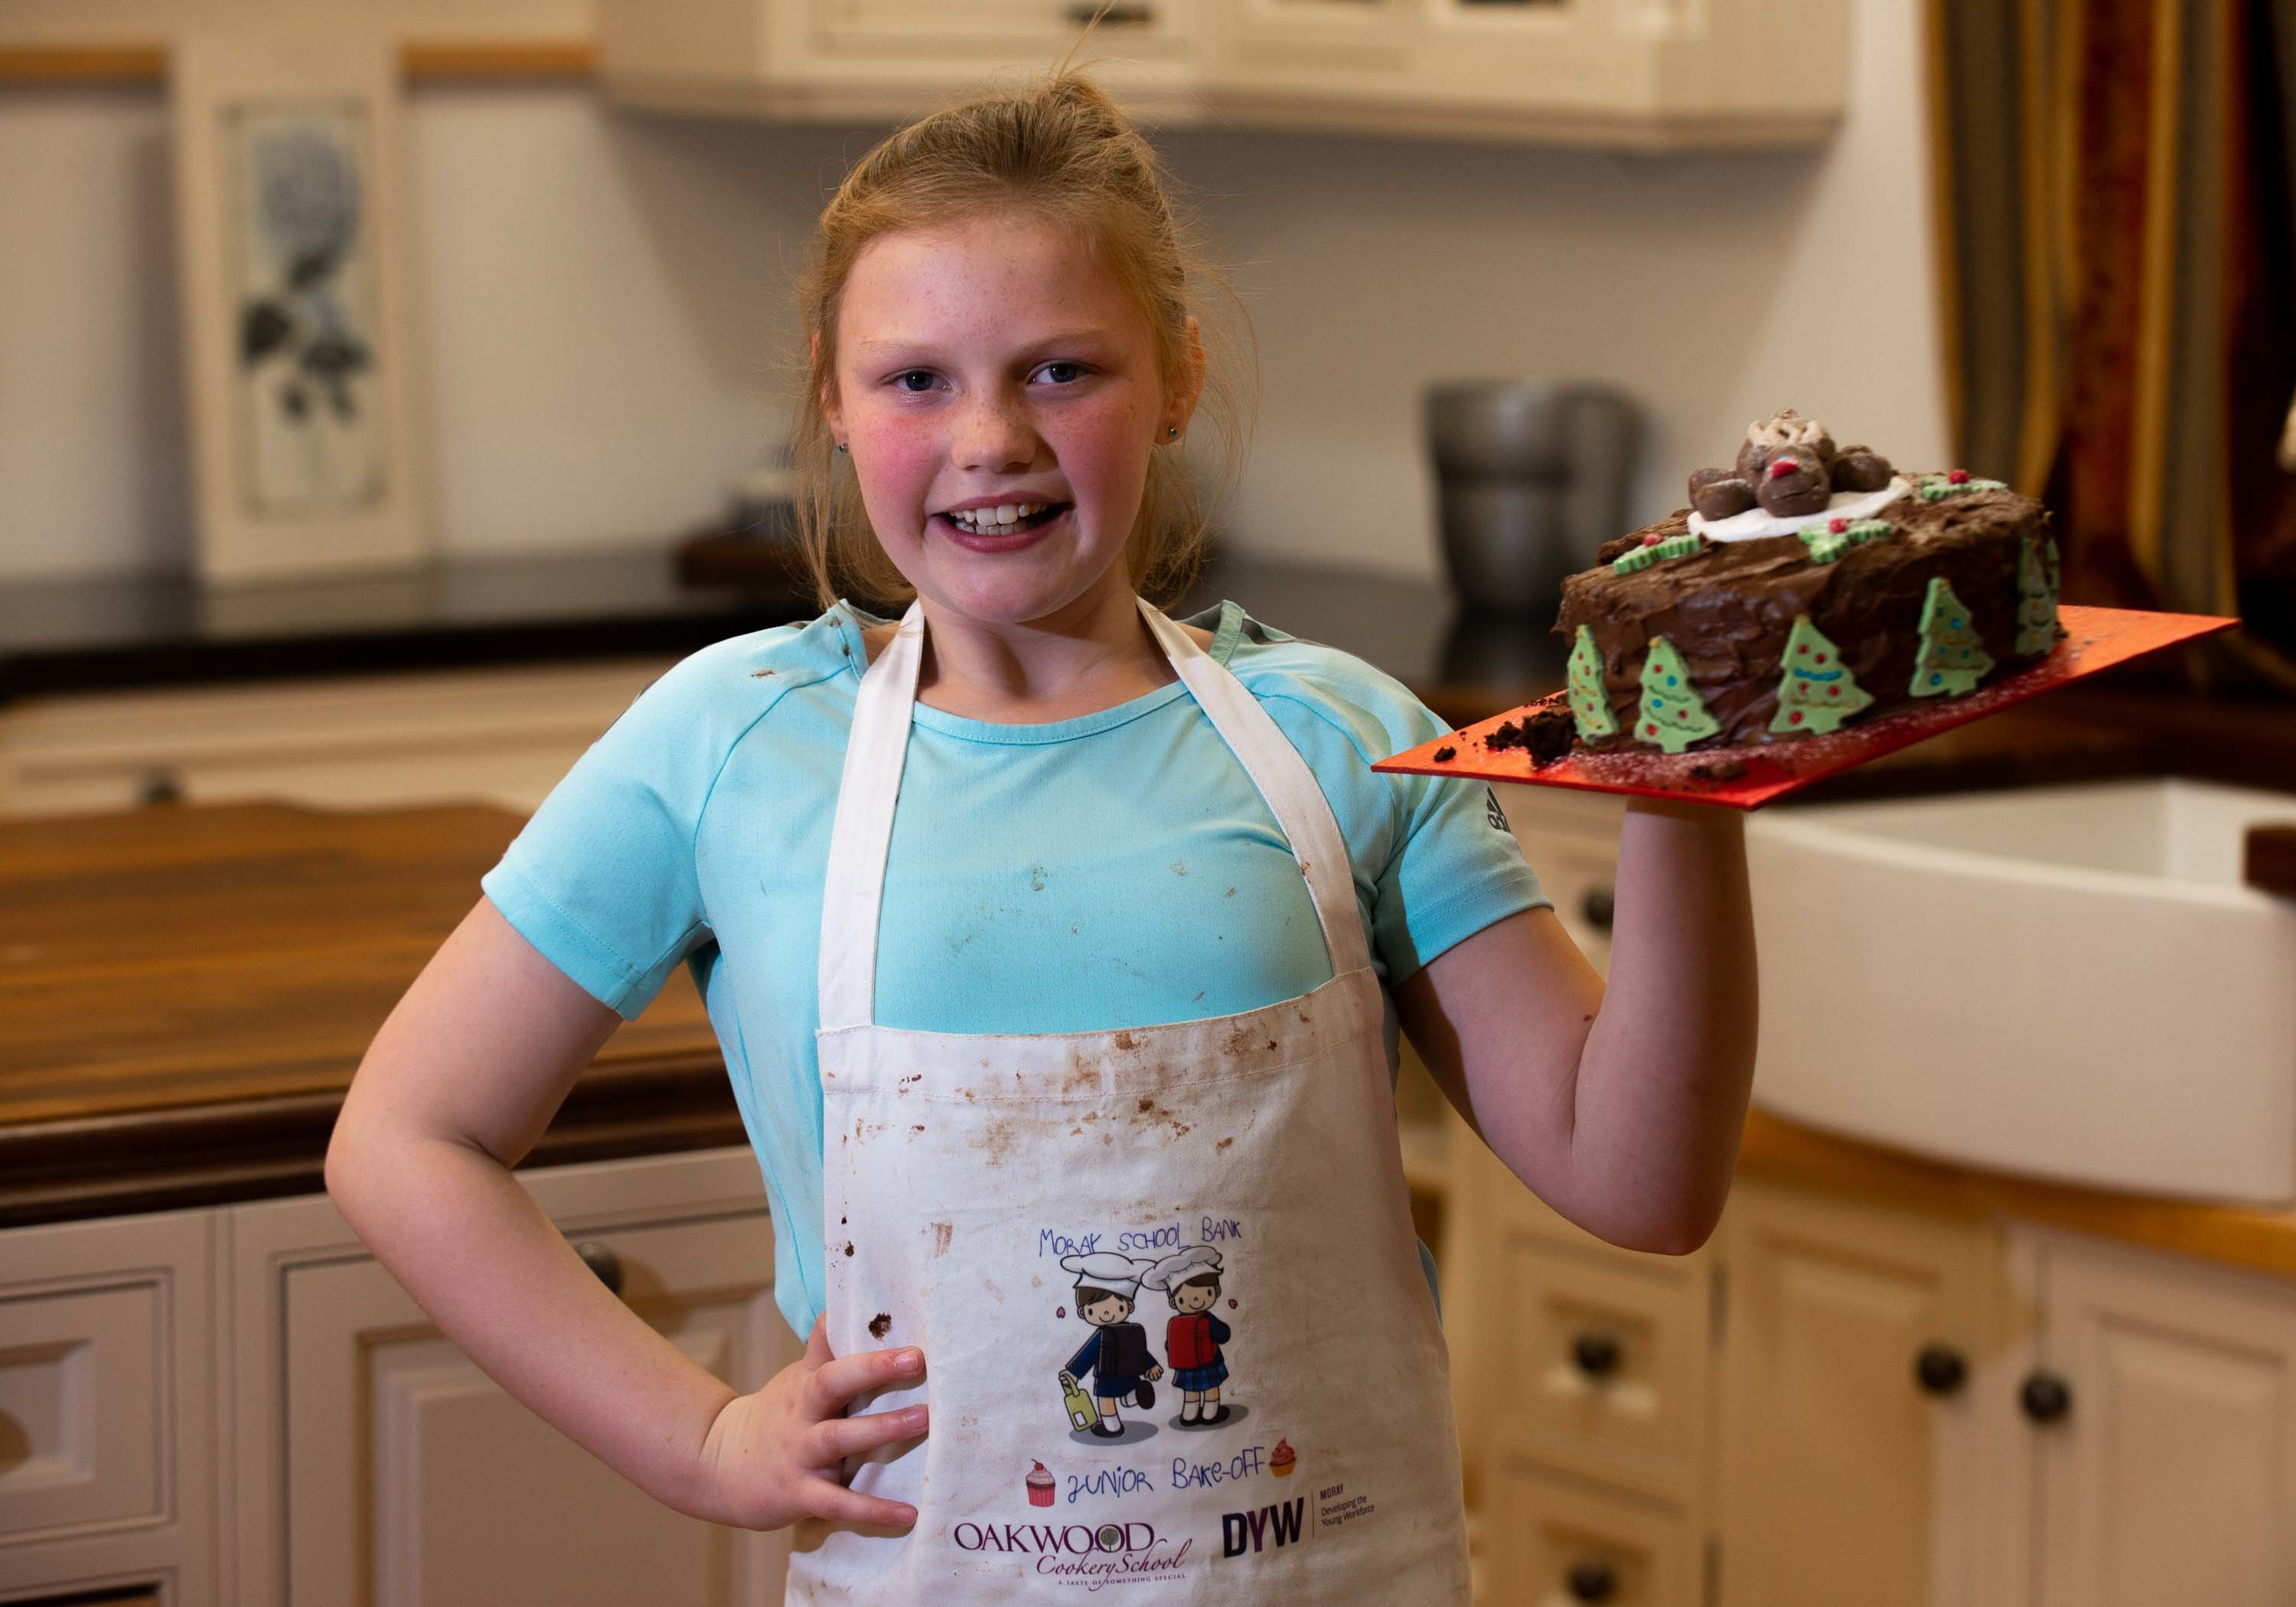 Ruby Jappy was named the winner of the Moray Junior Bake Off.